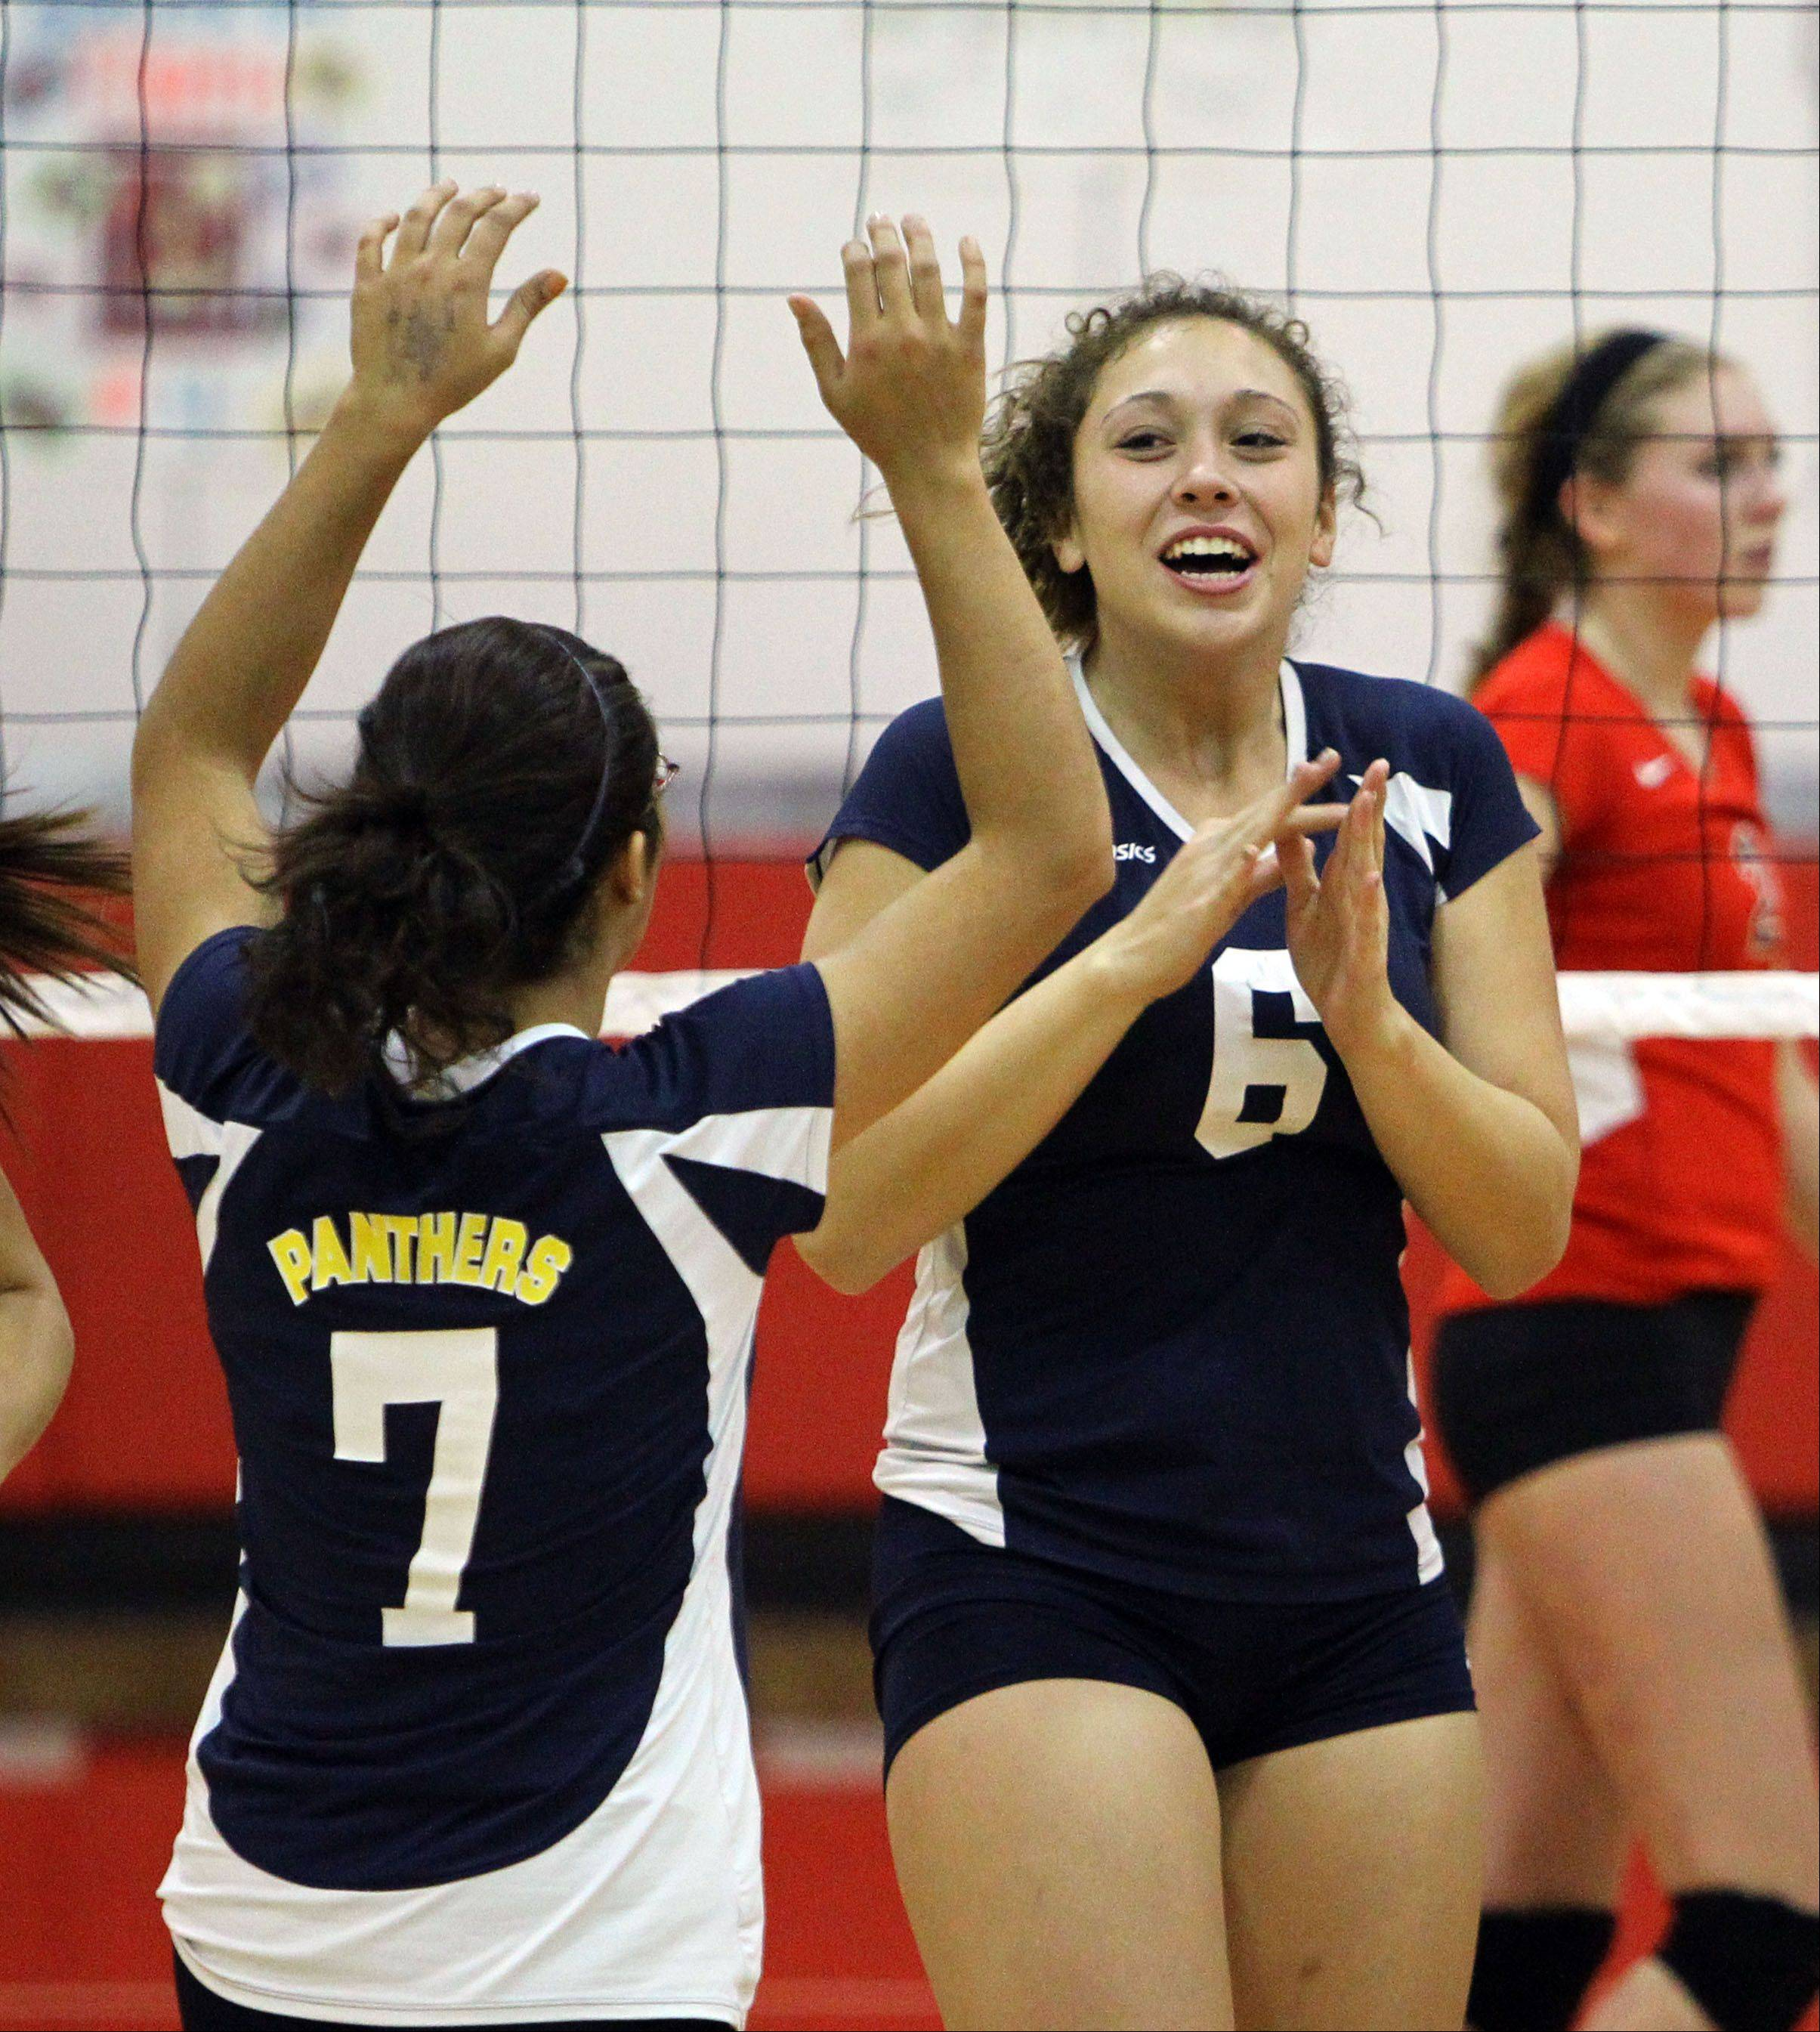 Round Lake's Izzy Rodriguez, left, and Dominique Gonzales celebrate after winning a point Monday night at Mundelein.